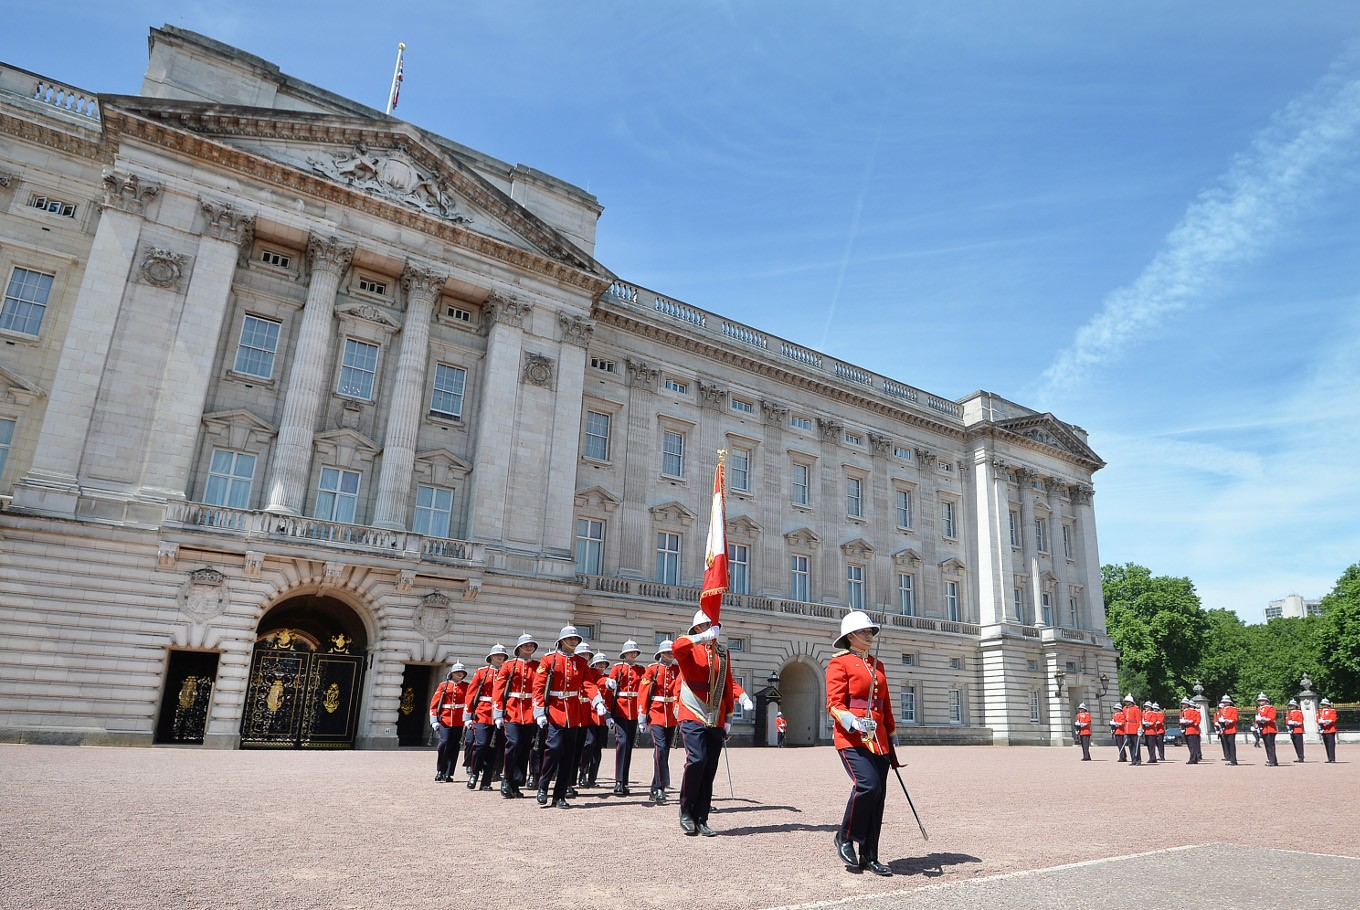 Queen Elizabeth to vacate her Buckingham Palace rooms for refit - aide